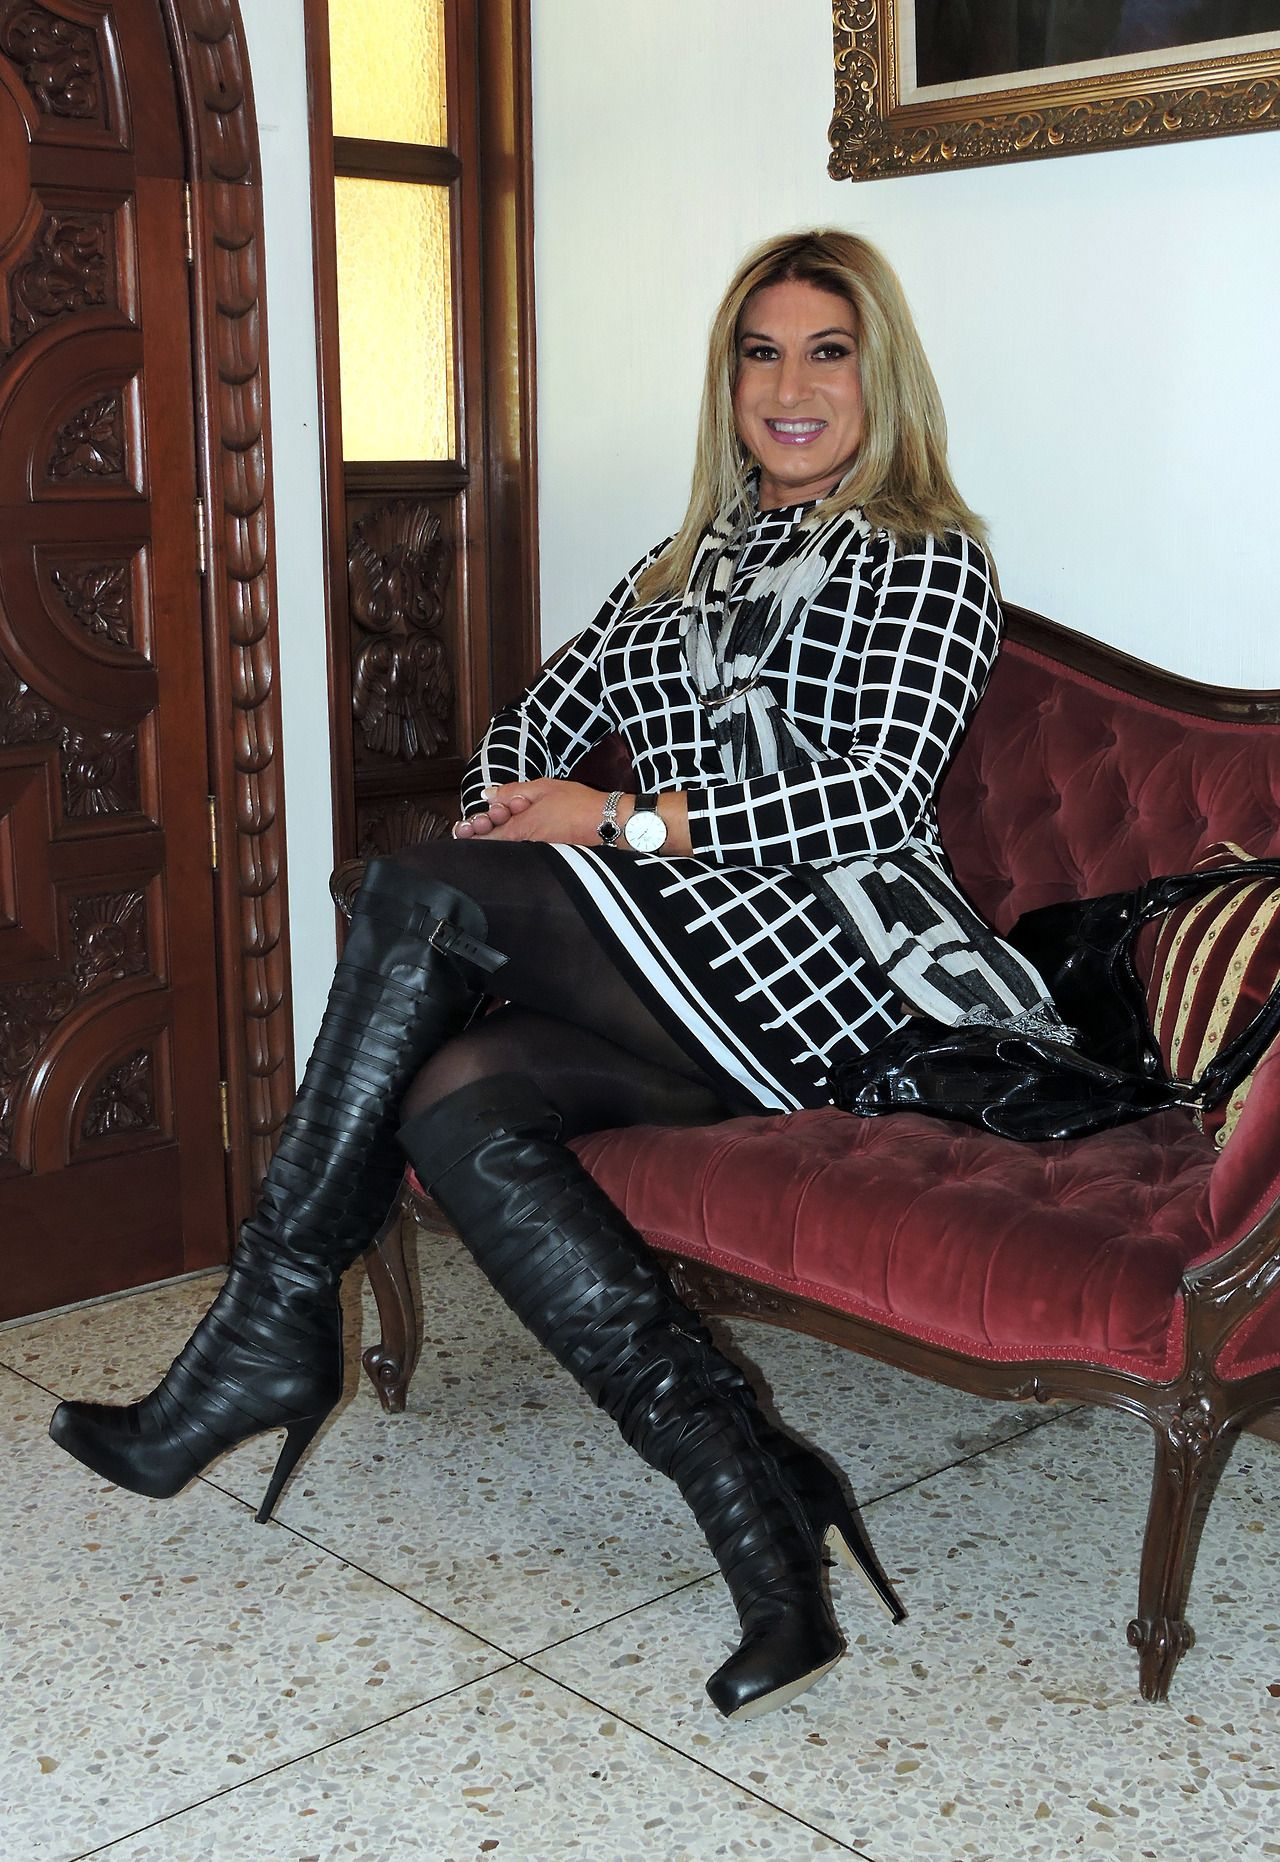 Mature Wives In Boots 41